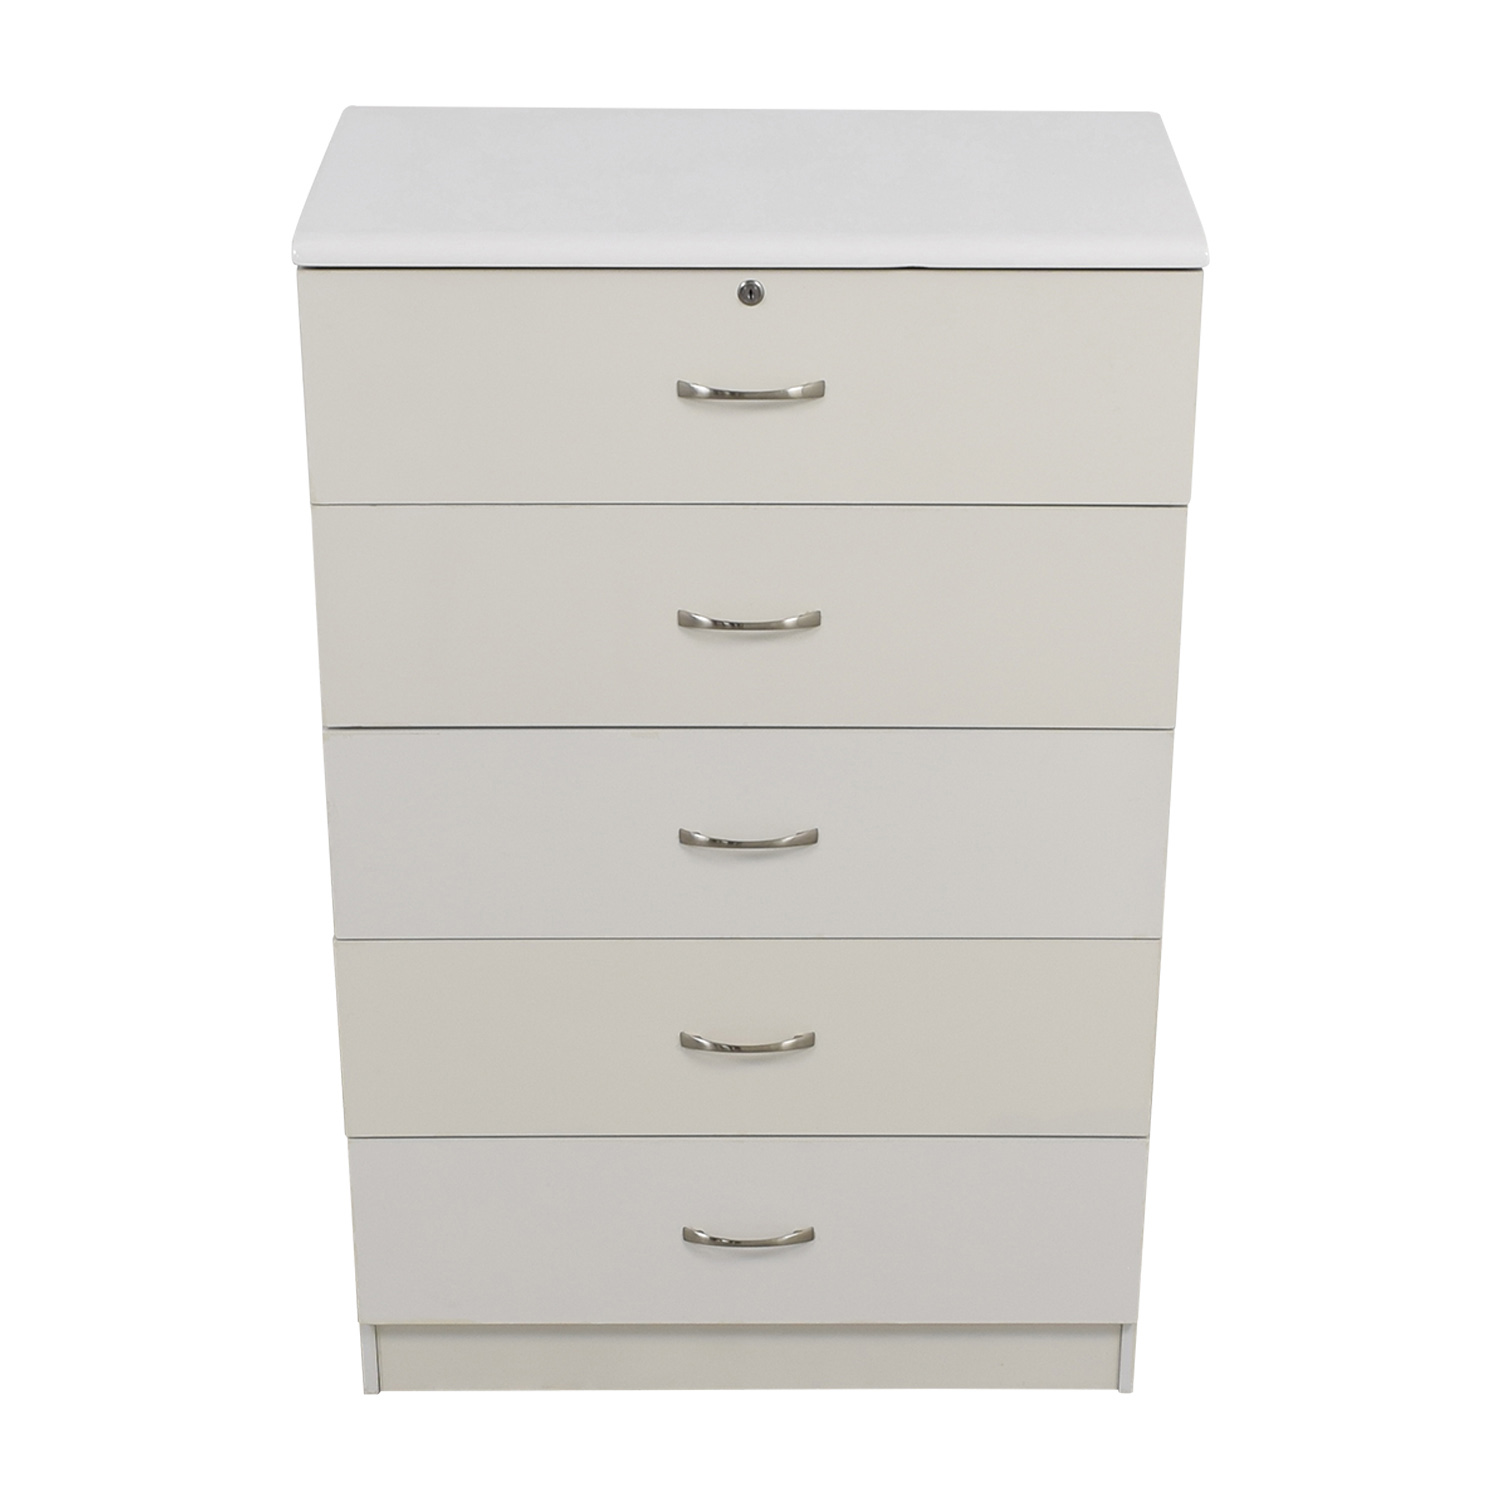 White Five-Drawer Dresser Dressers